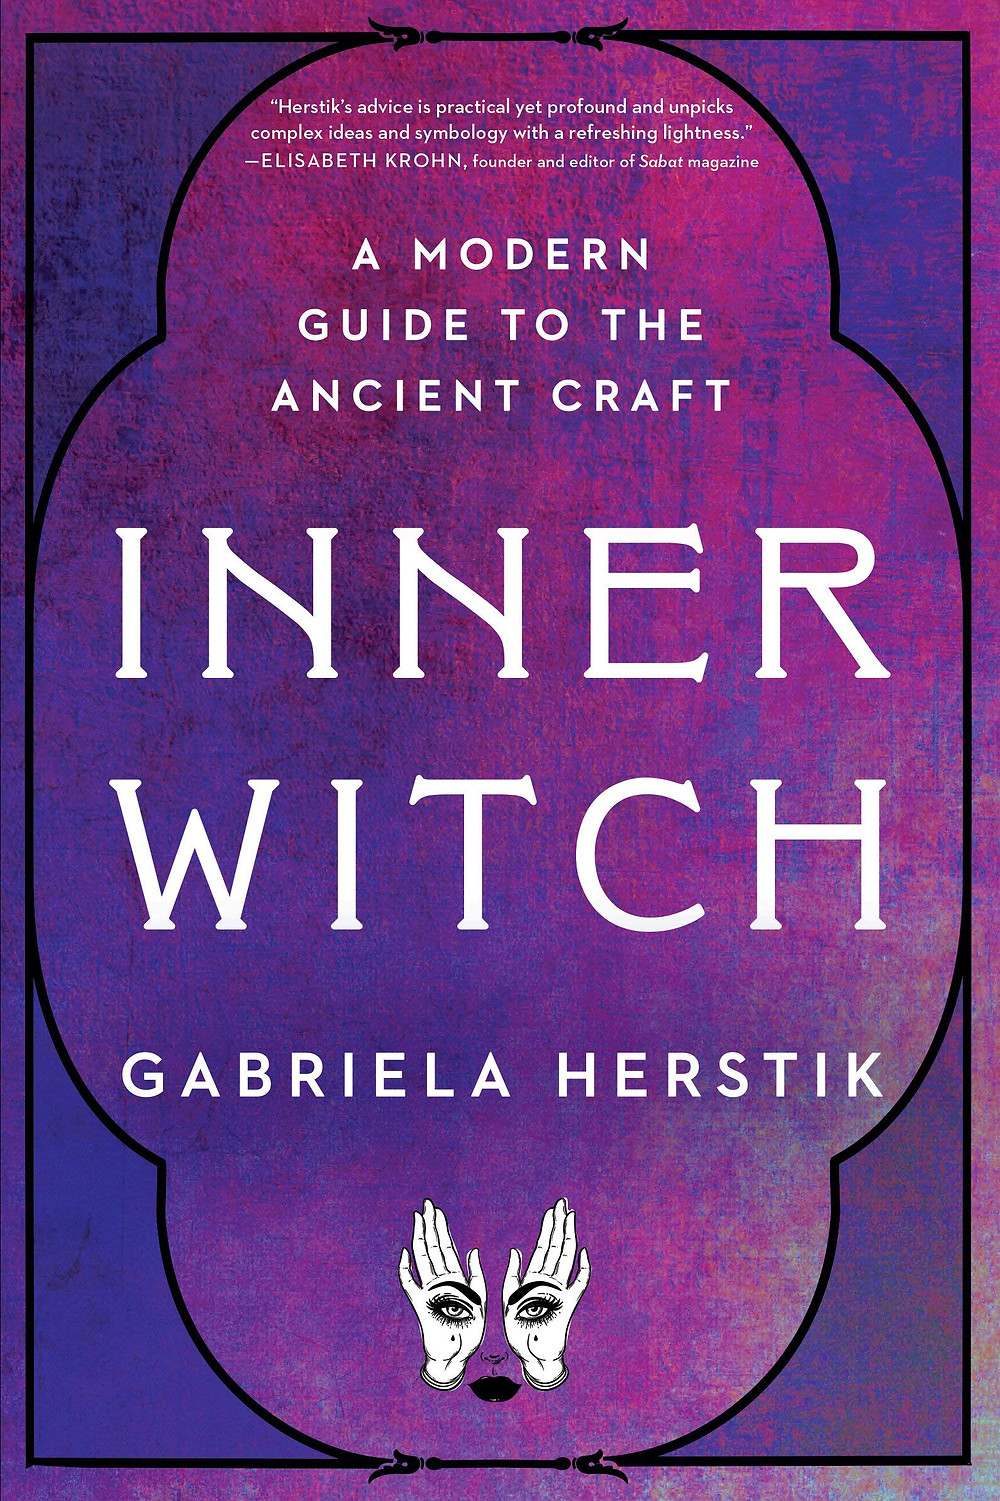 Inner Witch by Gabriela Herstik book gift for witches